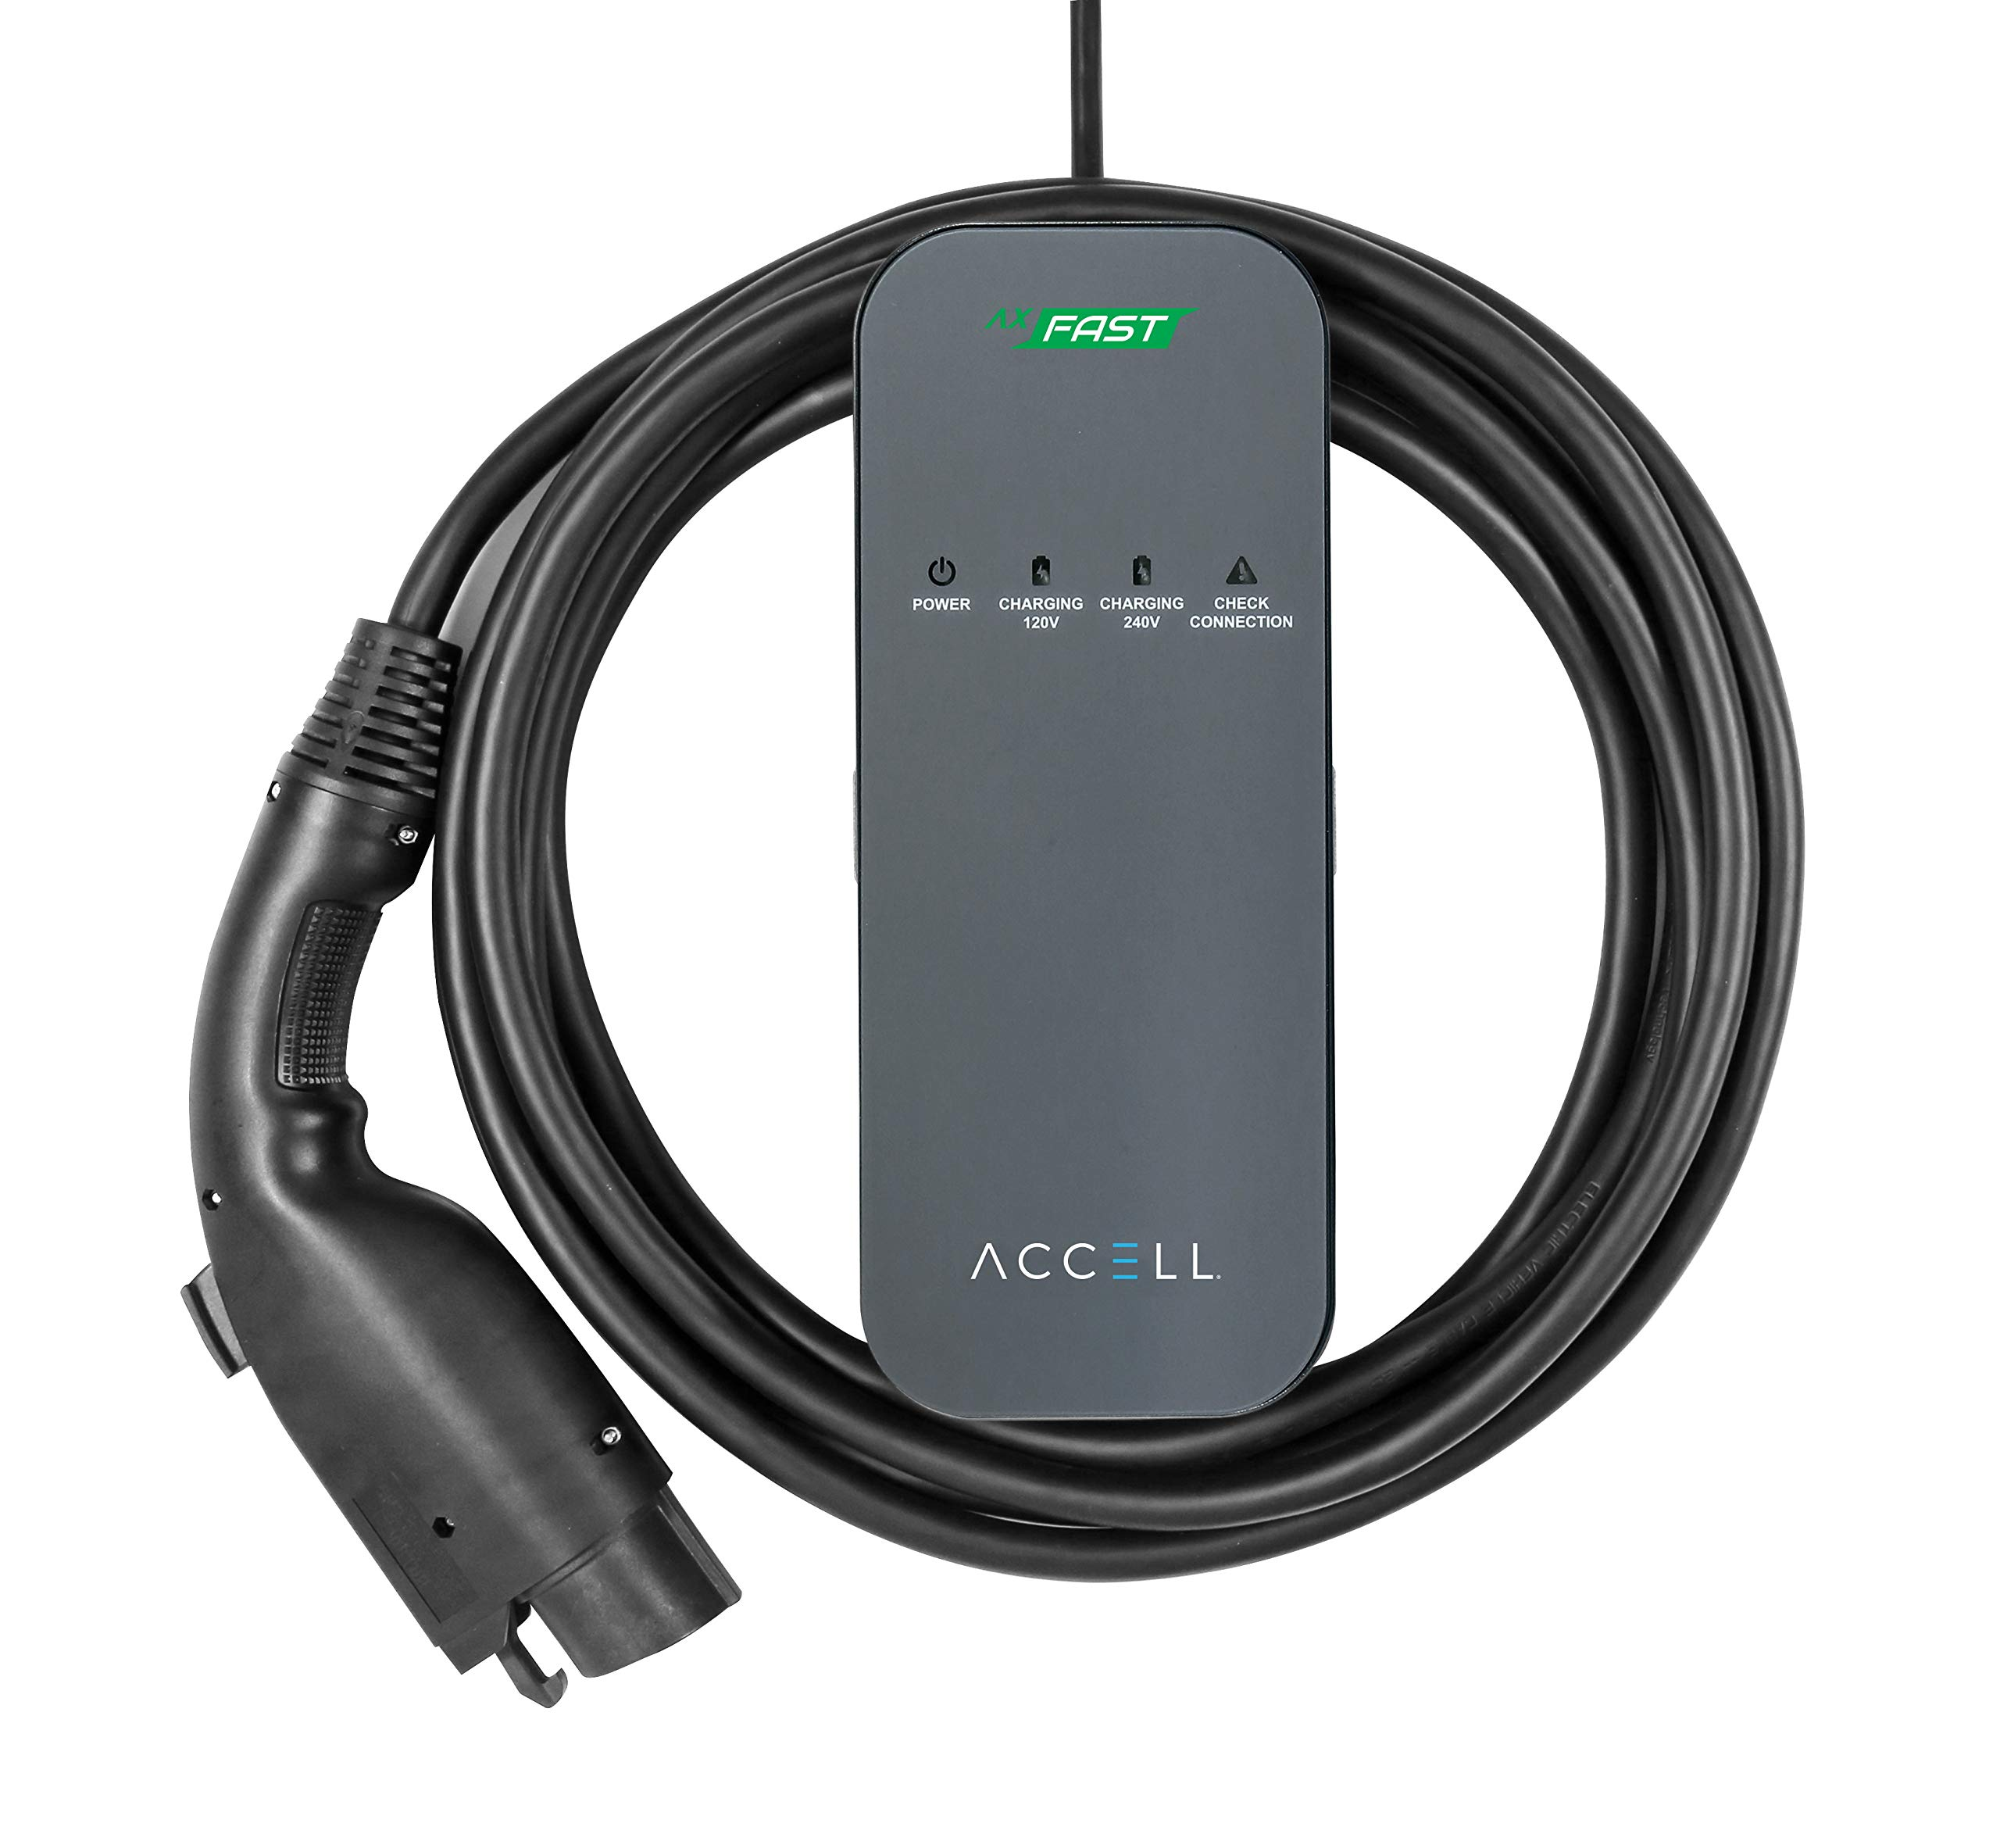 Accell AxFAST Dual-voltage Portable EVSE - 120/240V Electric Vehicle Charger Level 2 compatible with Tesla Chevy Volt Nissan Leaf Chrysler Pacifica Toyota Prius Hyundai Electric Cars and more by Accell